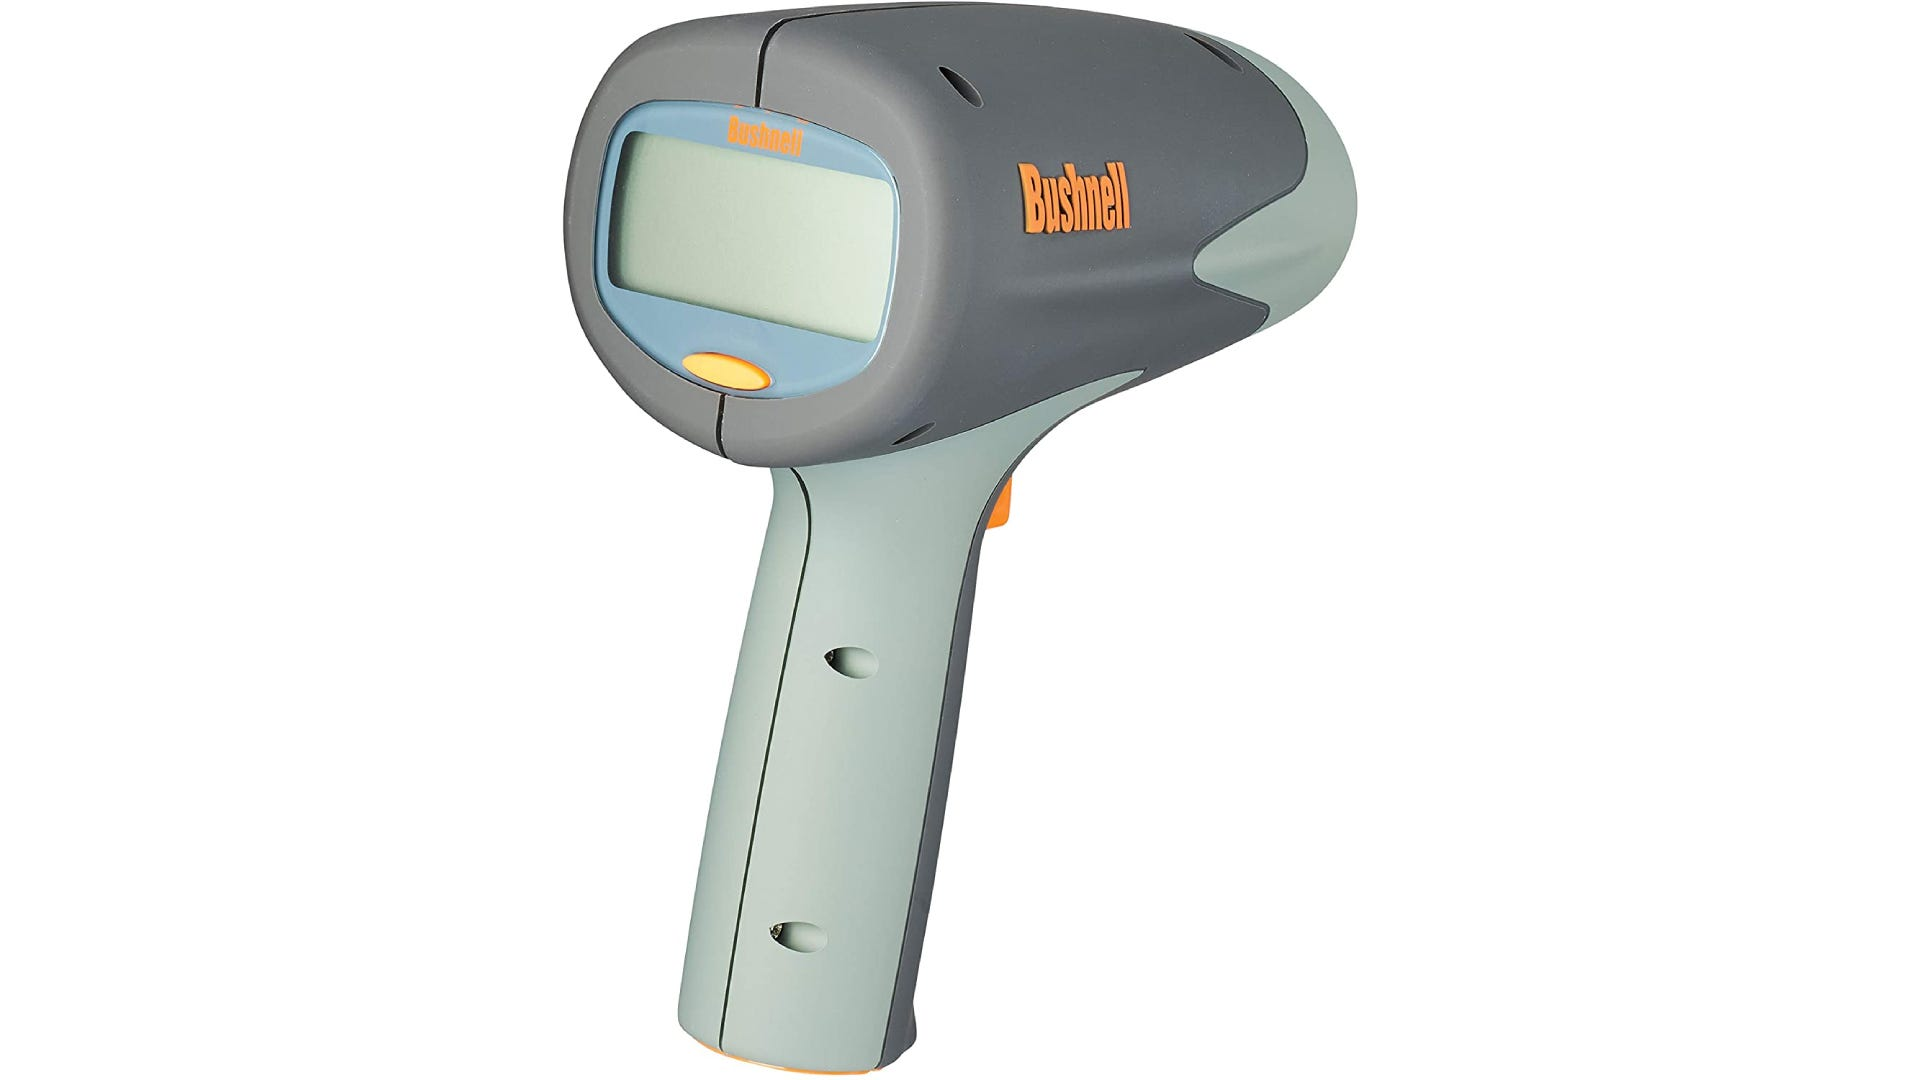 Black and gray radar gun with large LCD display and point and shoot functionality